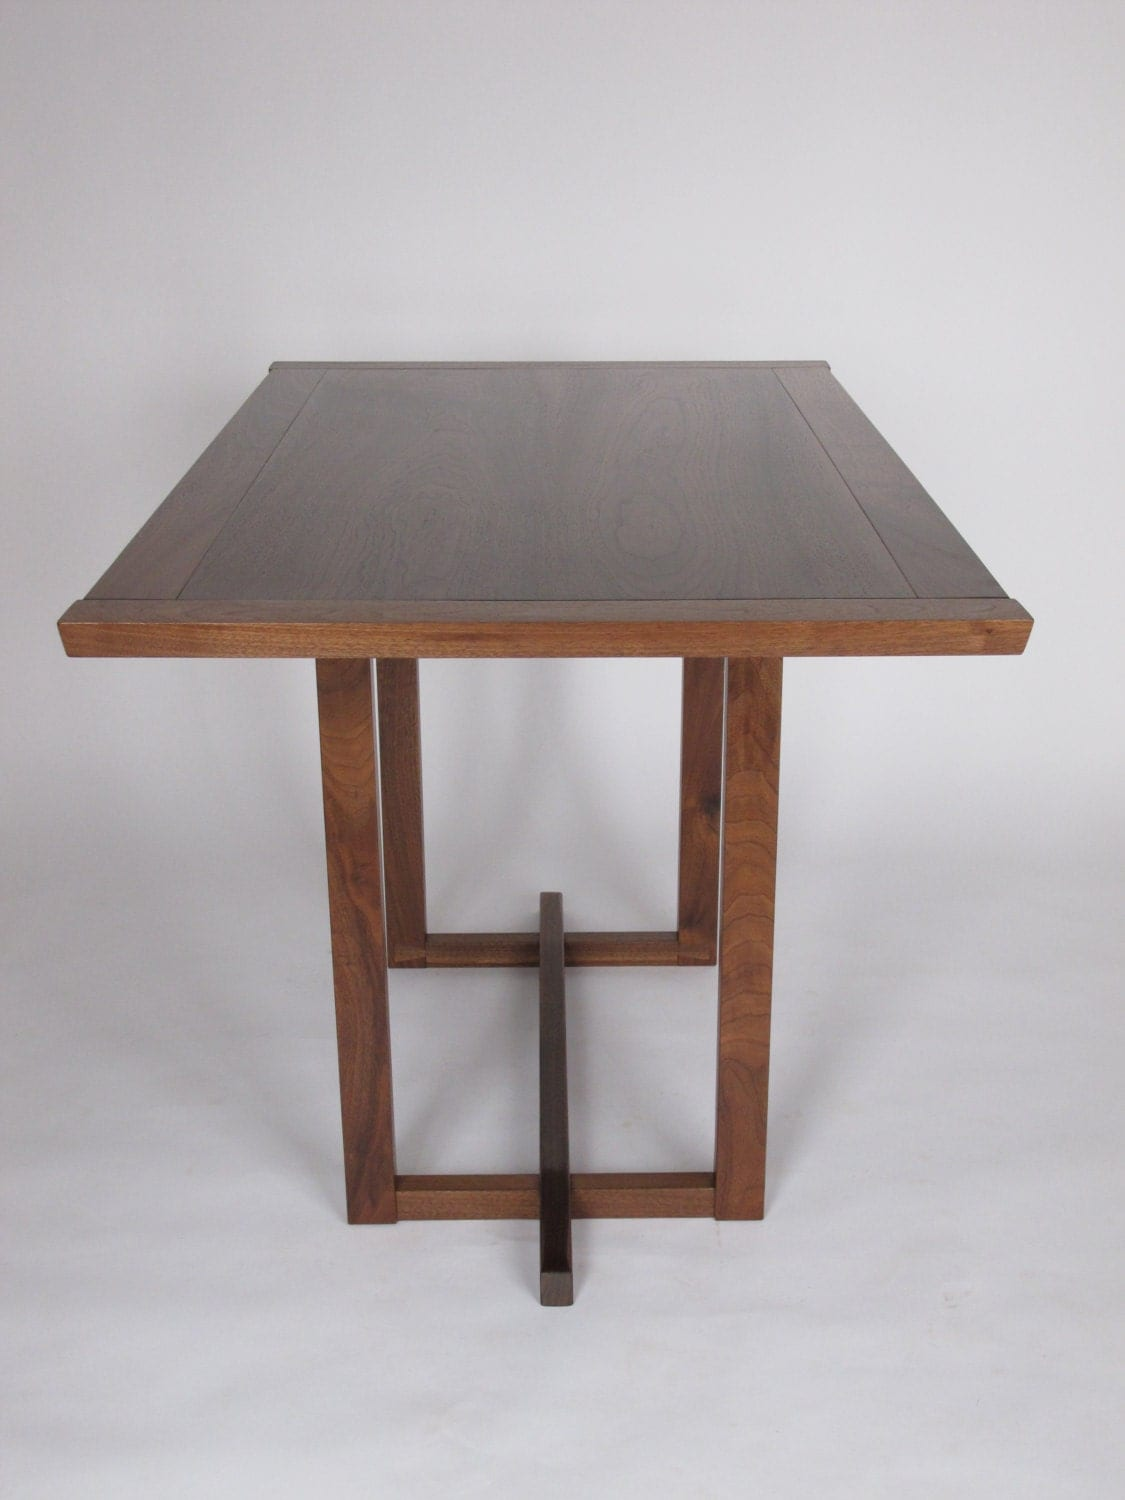 narrow dining table for a small dining room pedestal table ForNarrow Dining Room Table